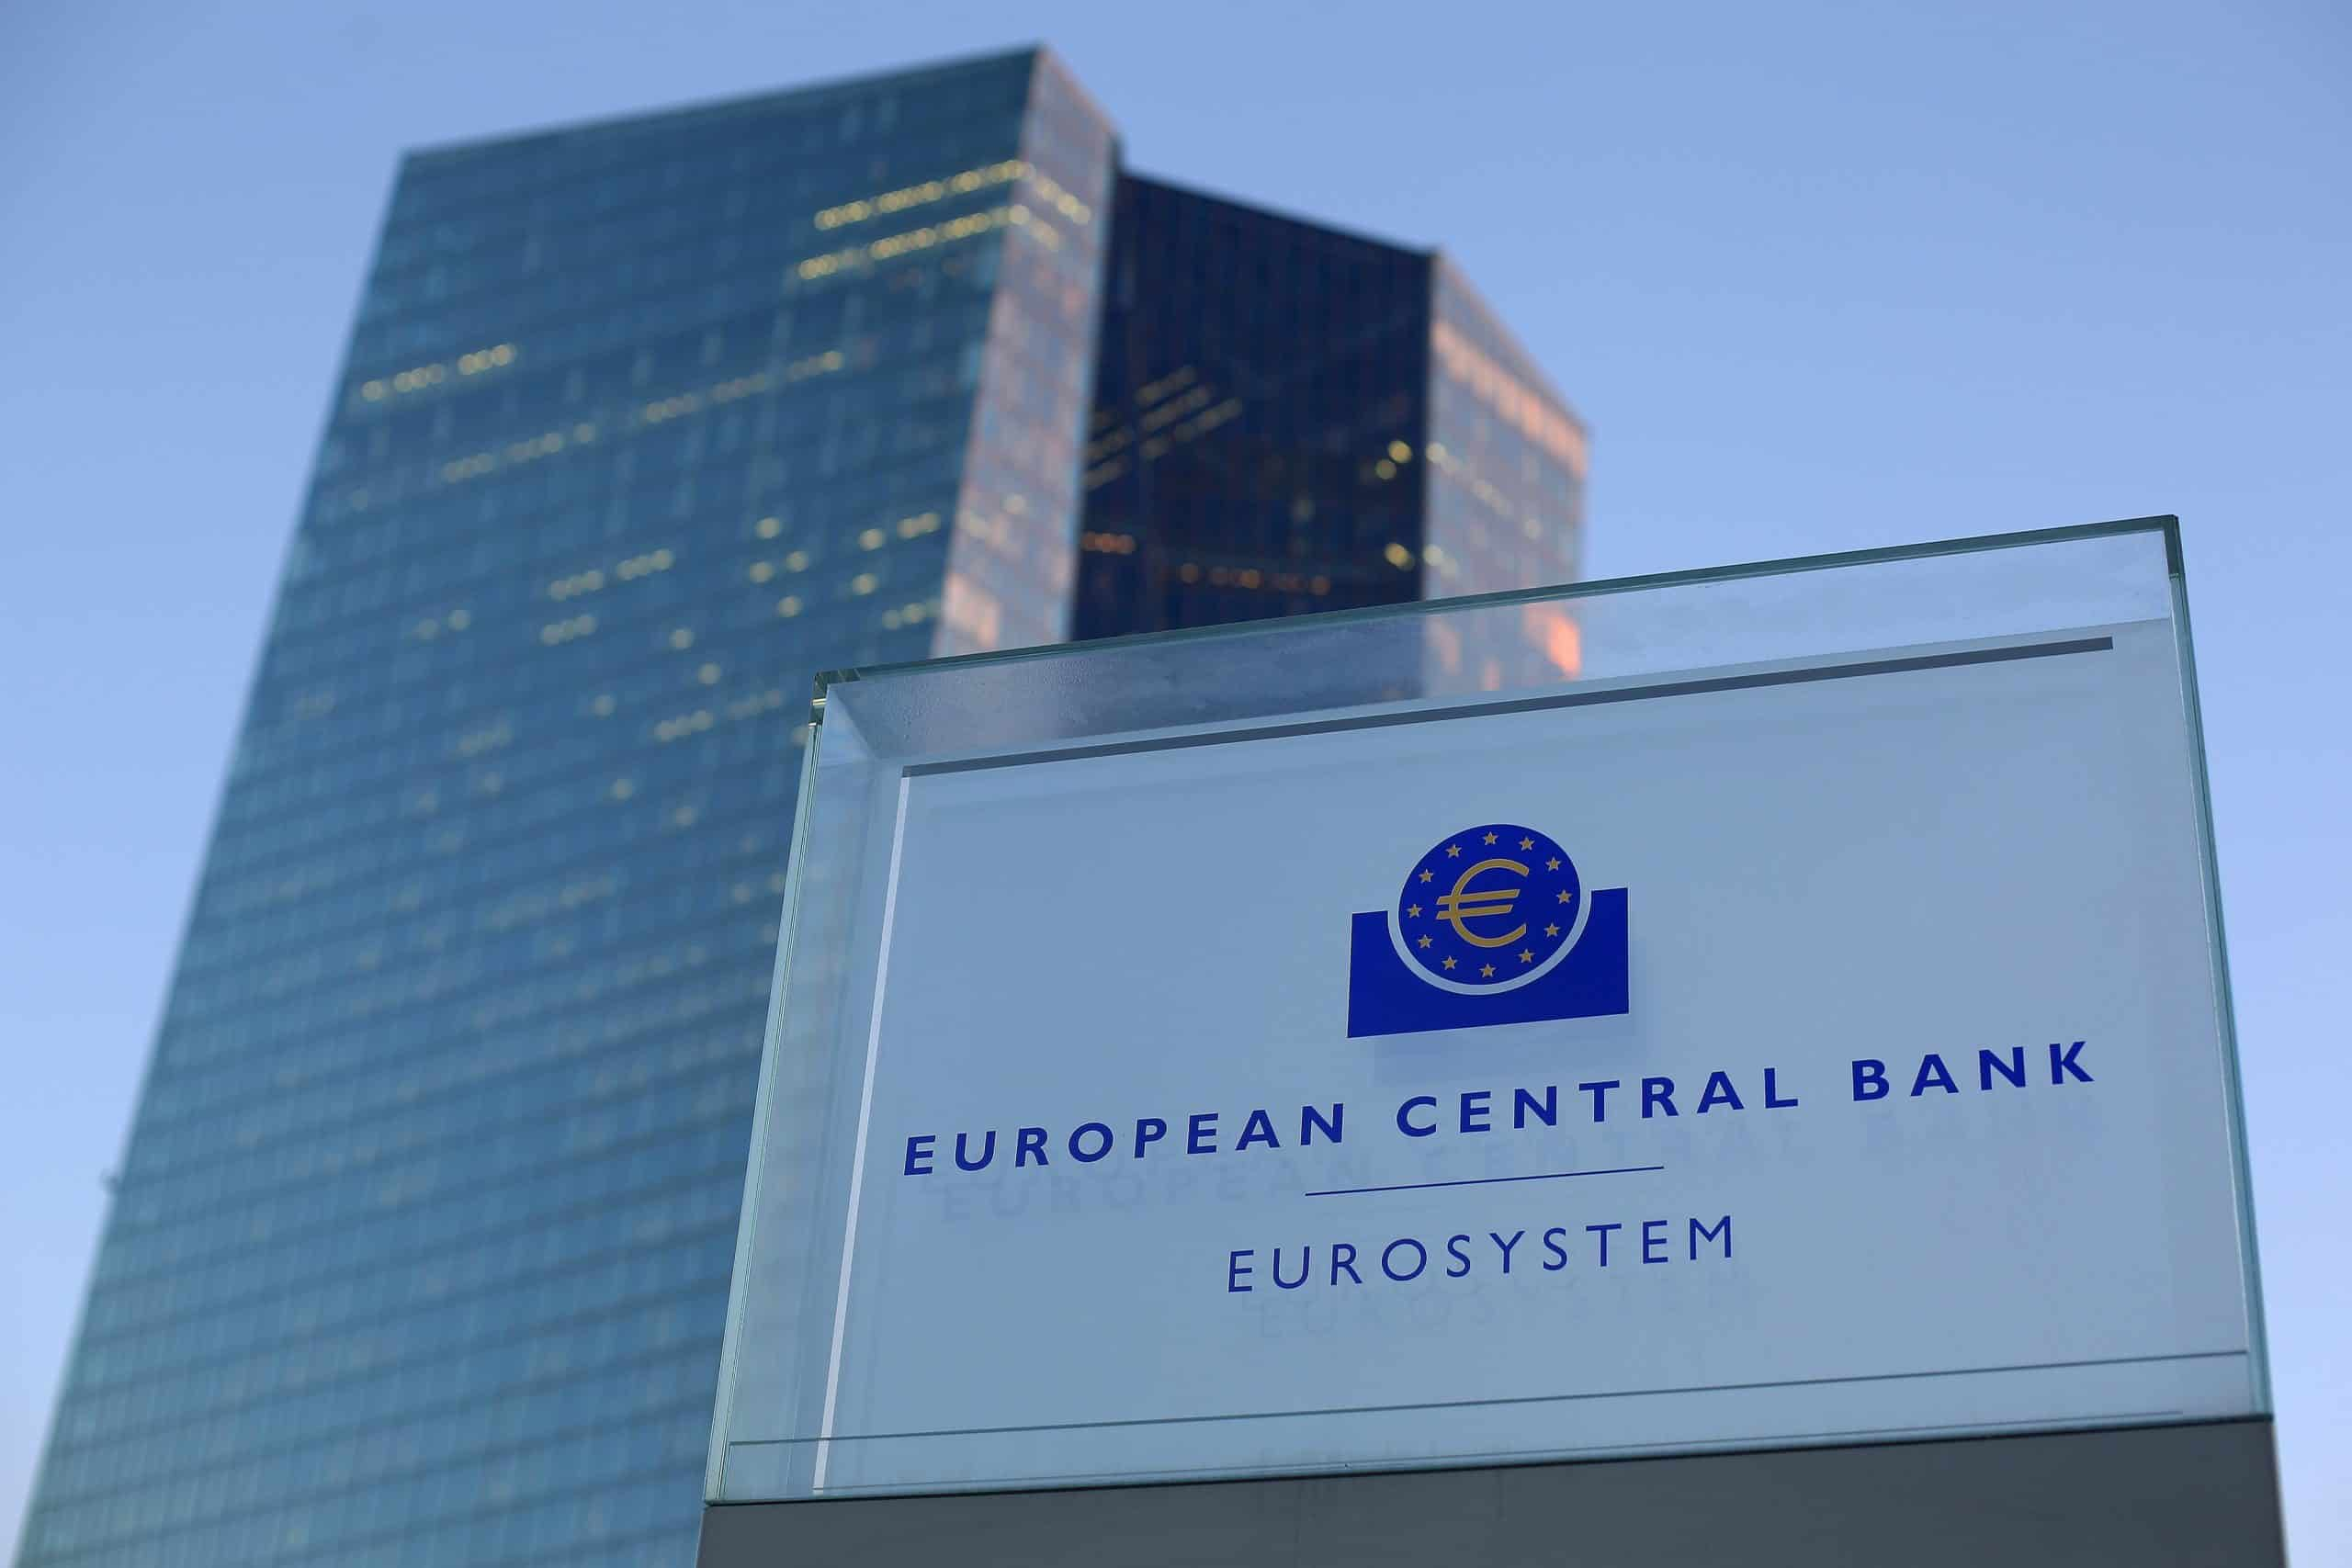 European Central Bank Starts Public Consultation for Decentralized Euro